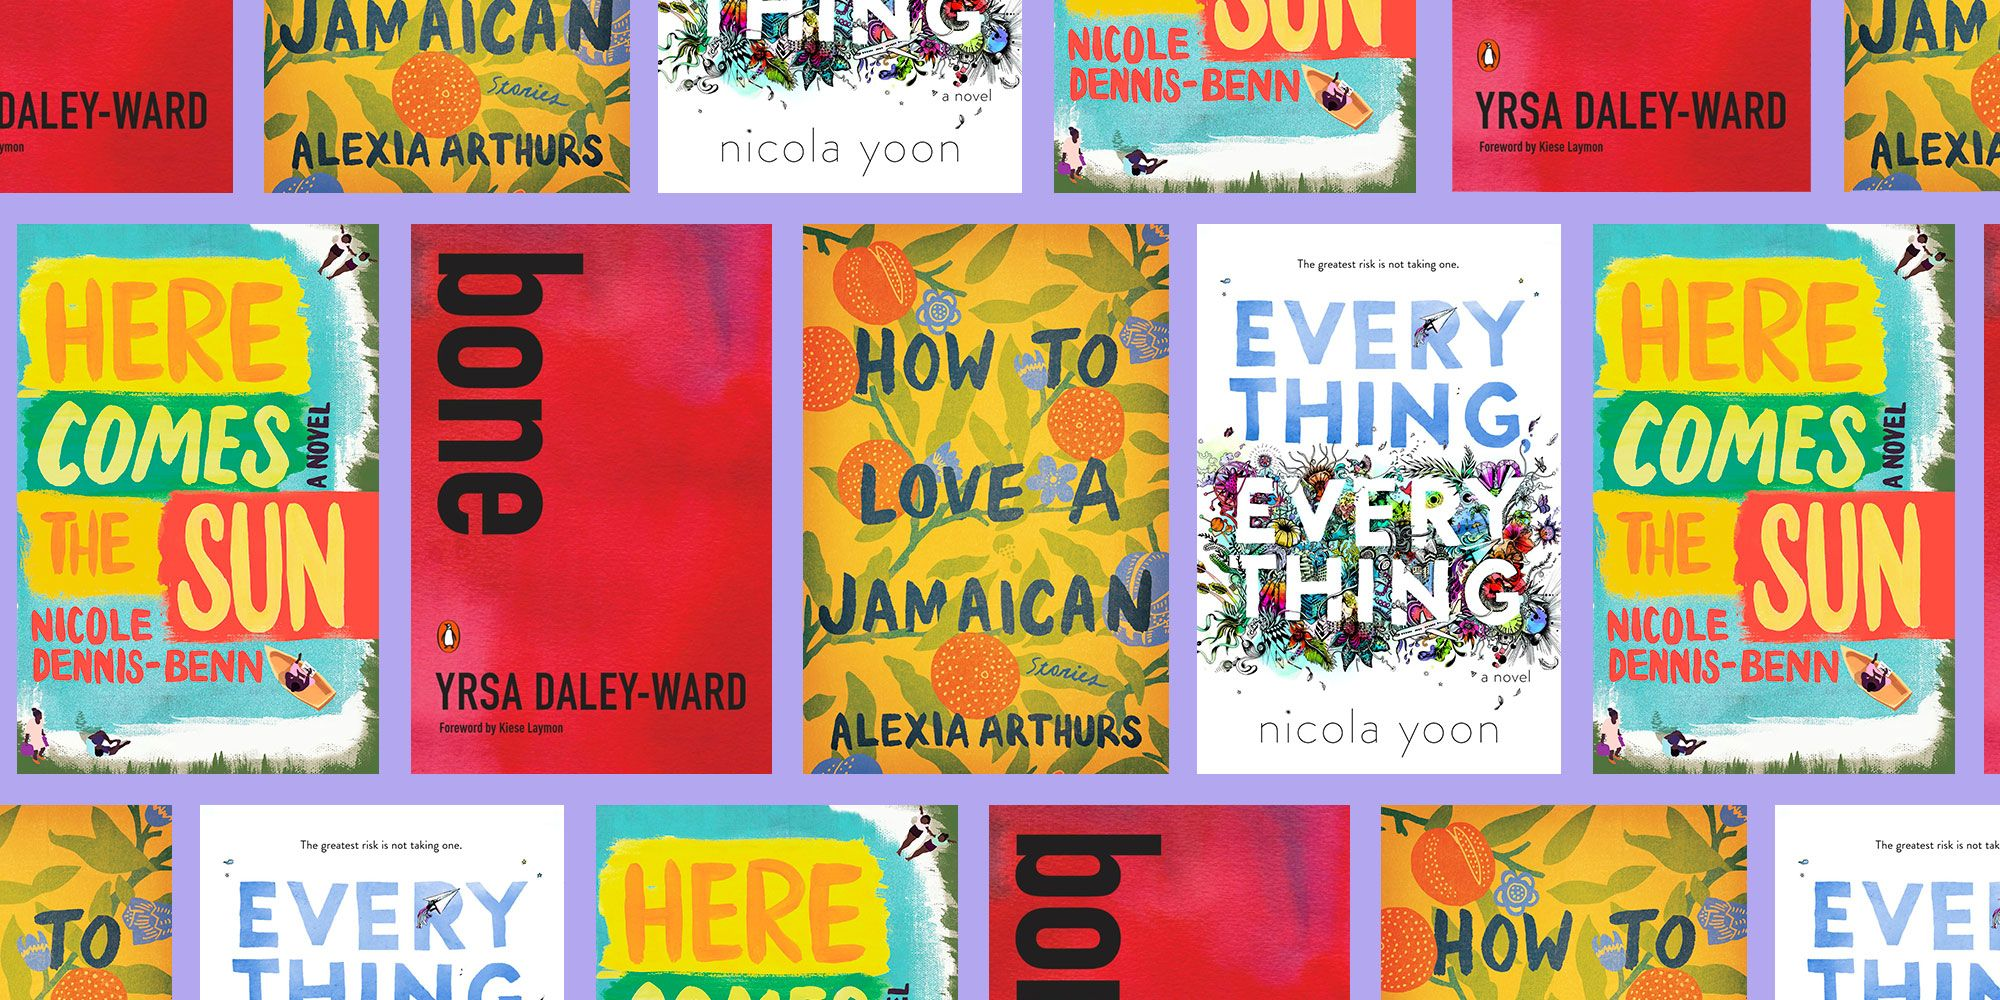 8 Books By Jamaican Authors Every Person Should Read